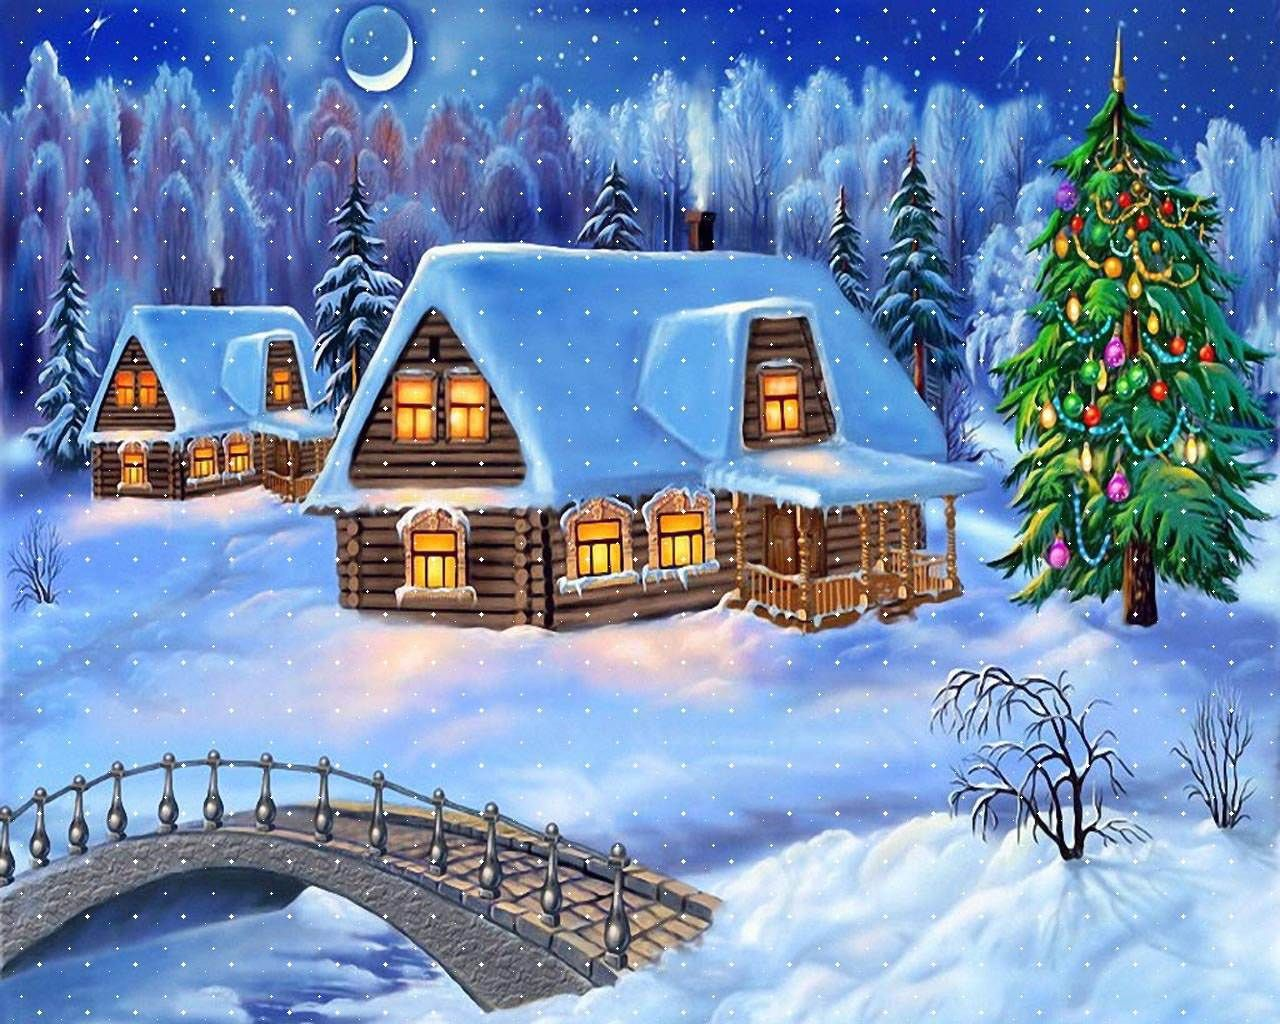 Christmas Village Wallpaper   Christian Wallpapers and Backgrounds 1280x1024